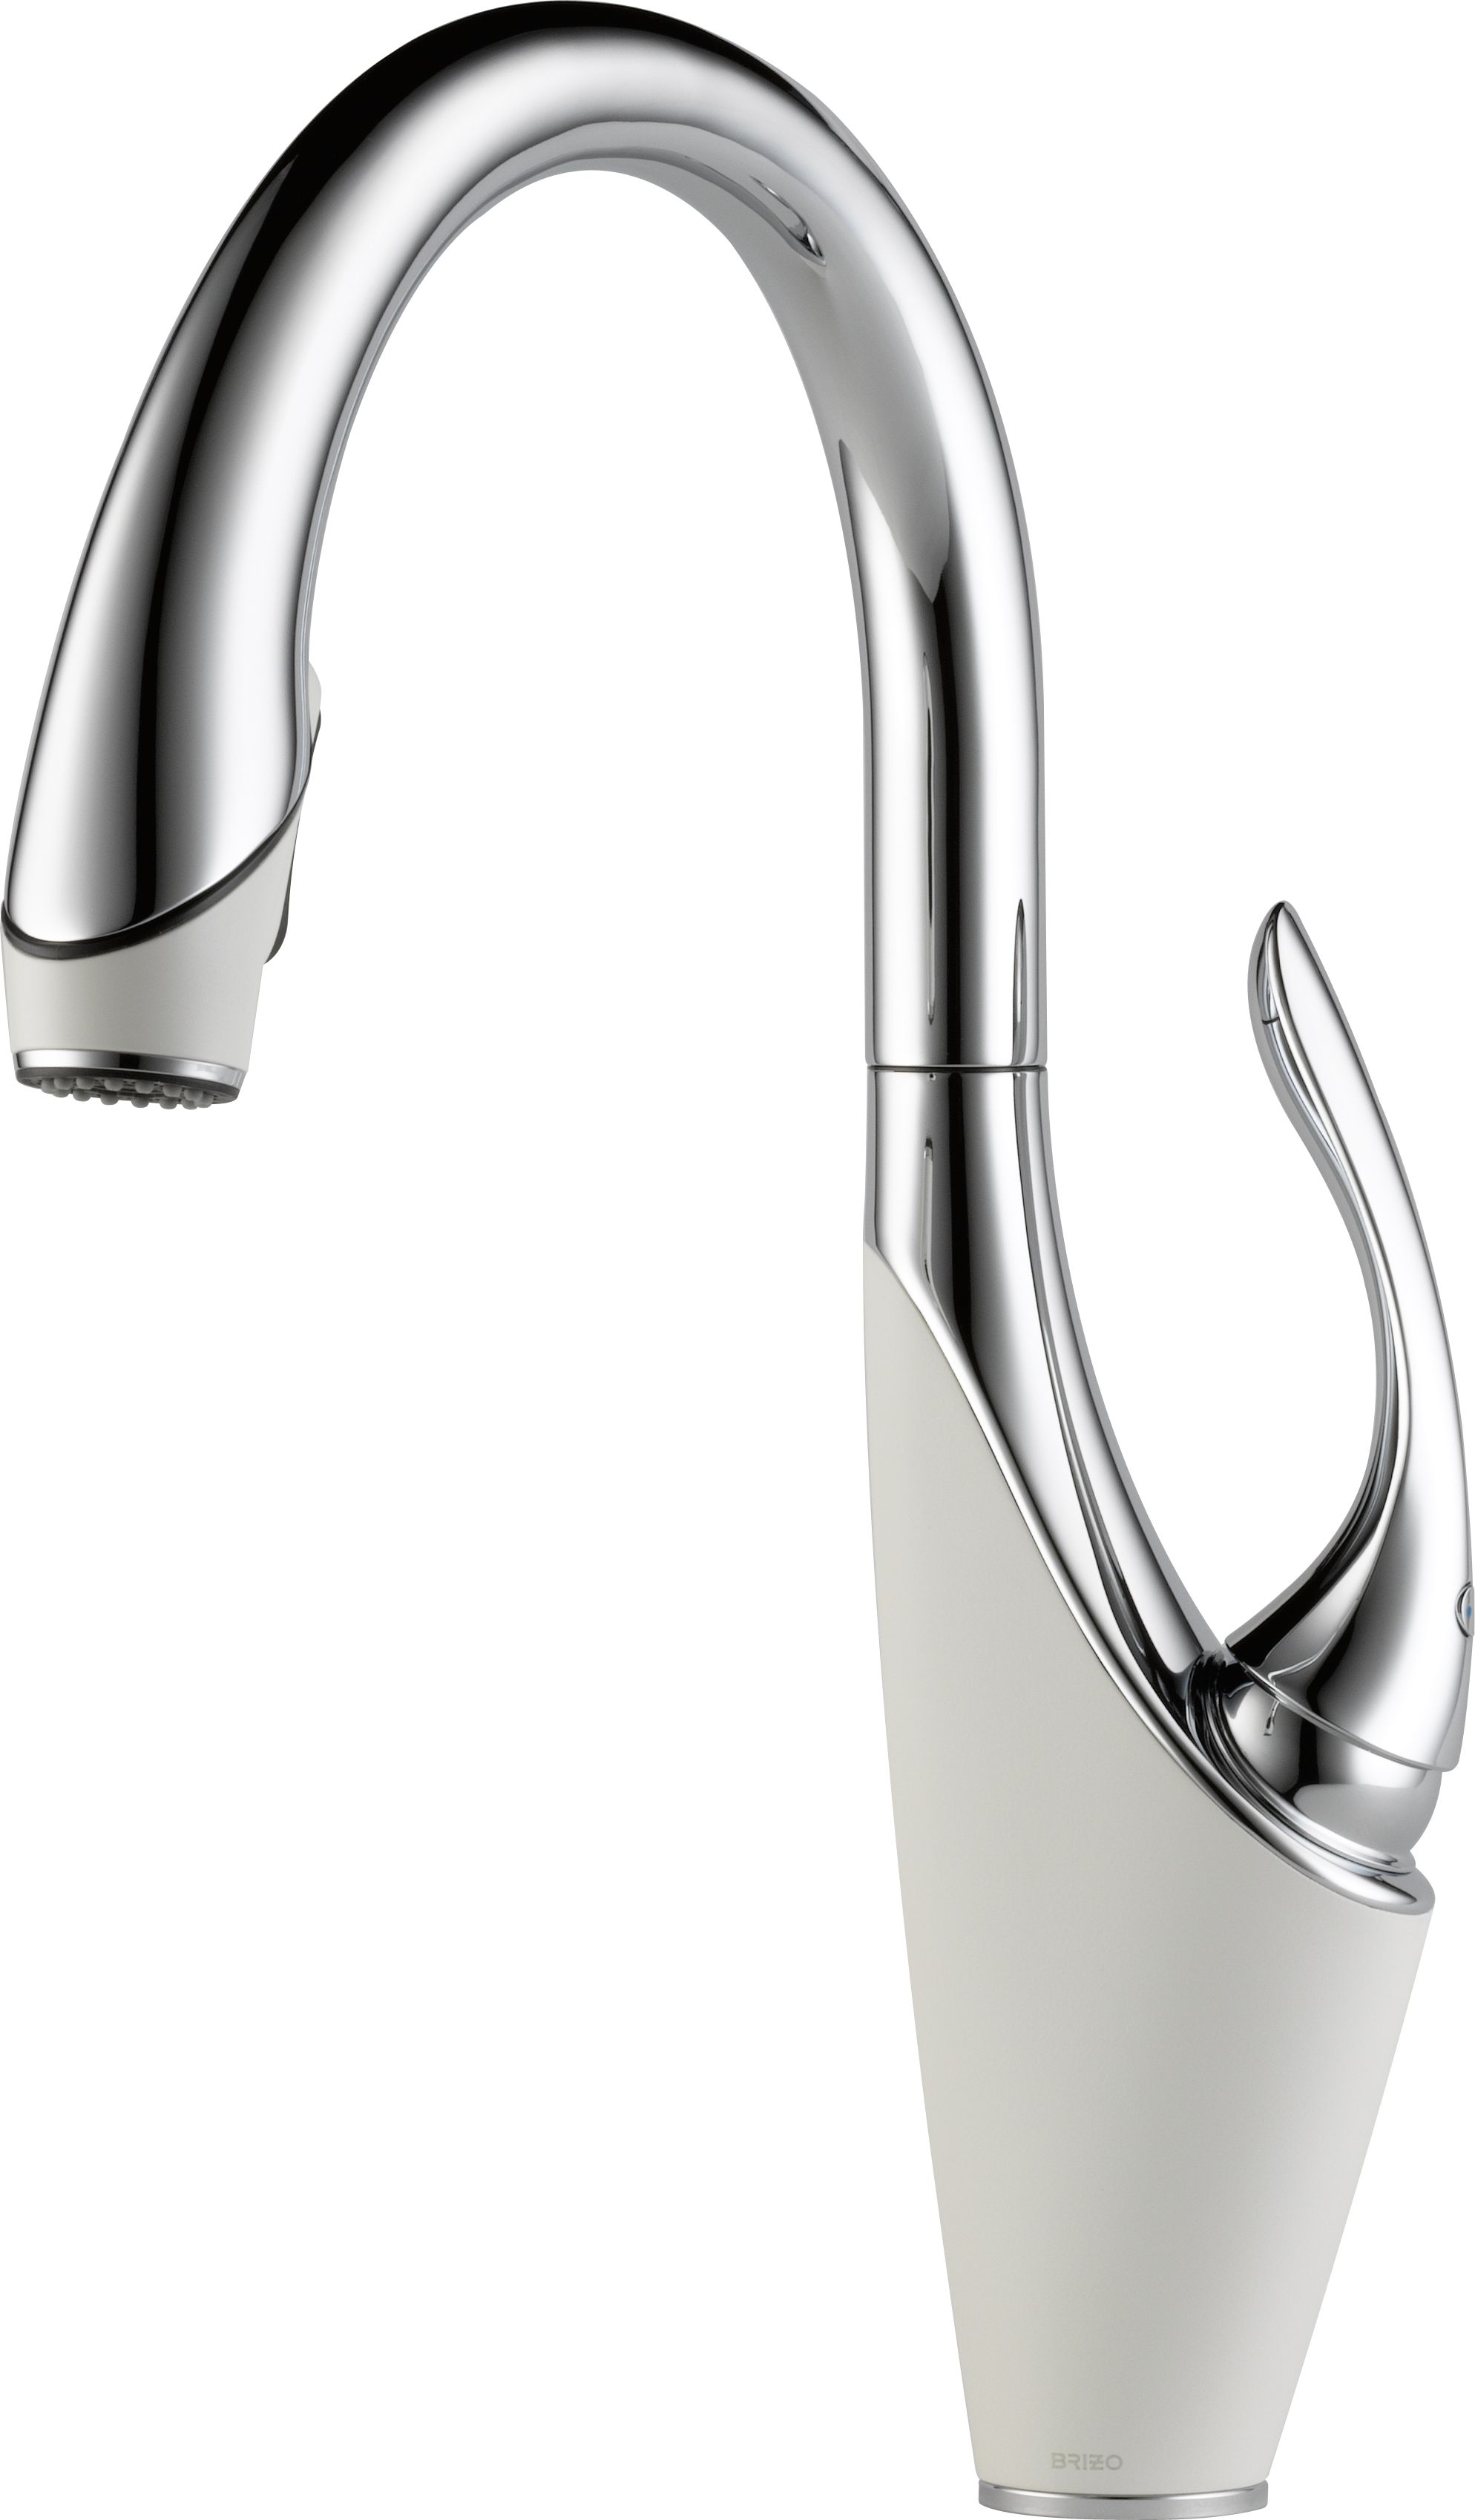 brz new faucets solna home pc image kitchen category backgroundnode beverage brizo